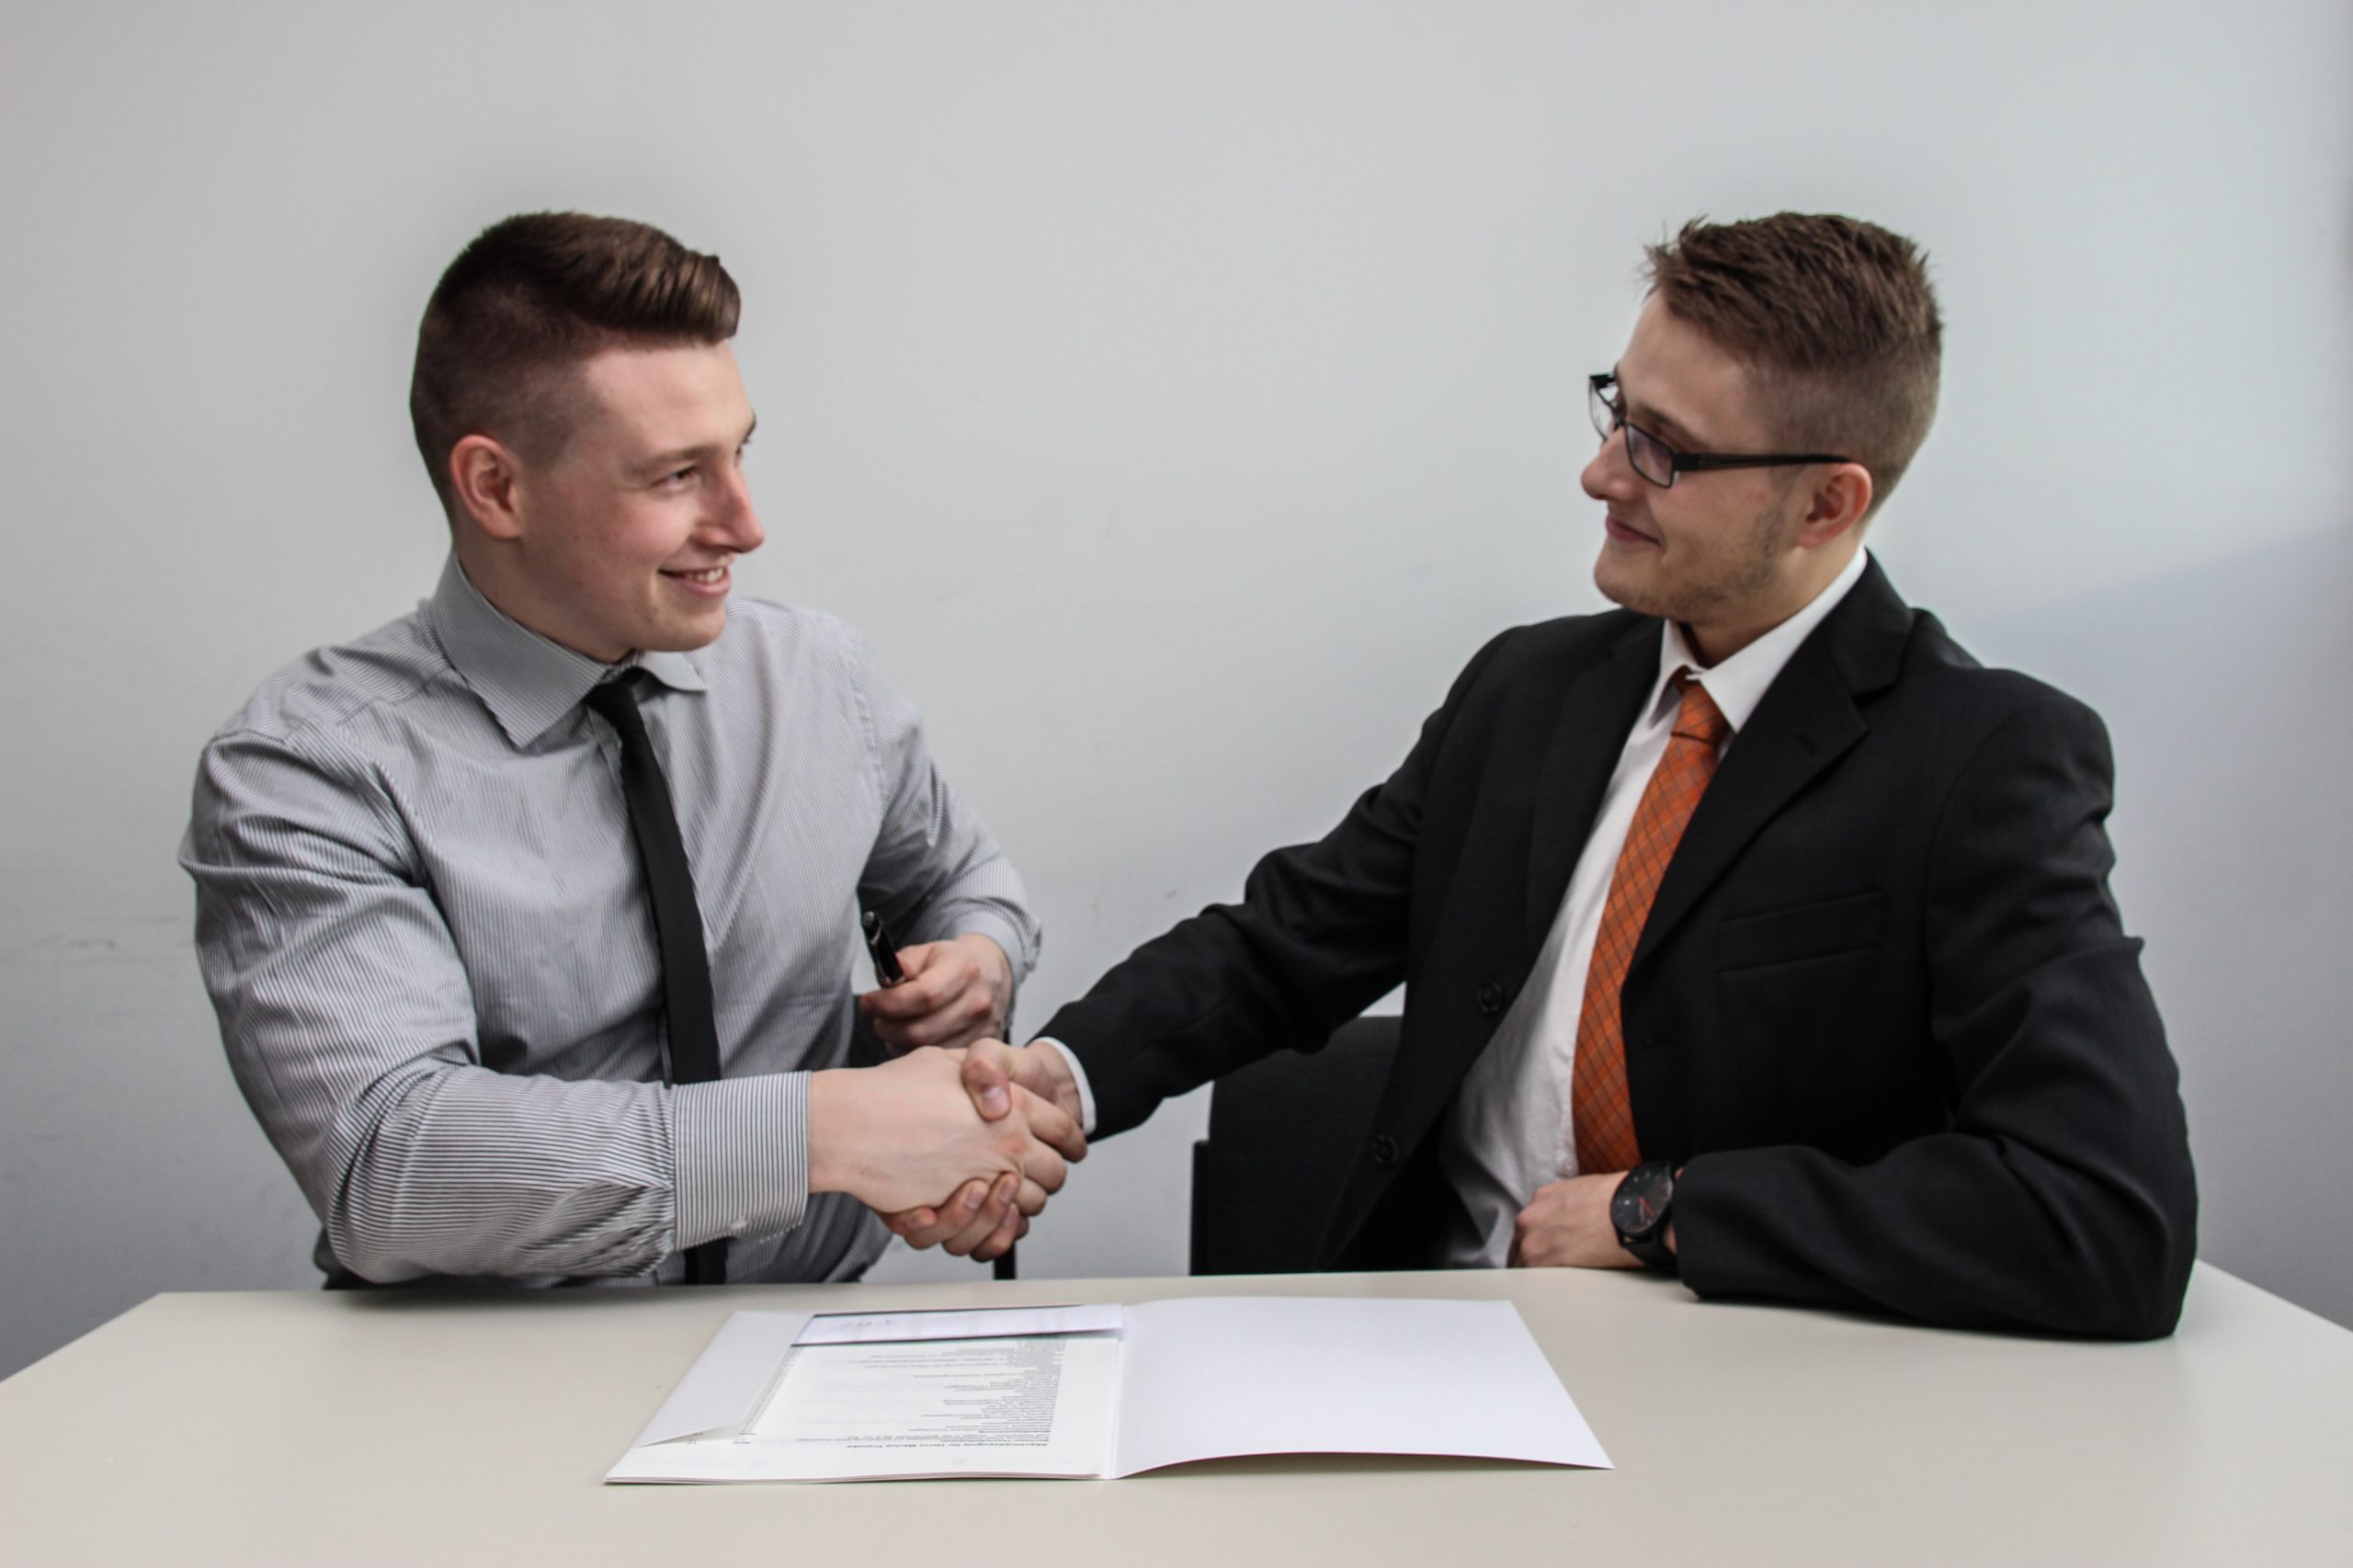 amazon business owner shaking hands cordially with a client